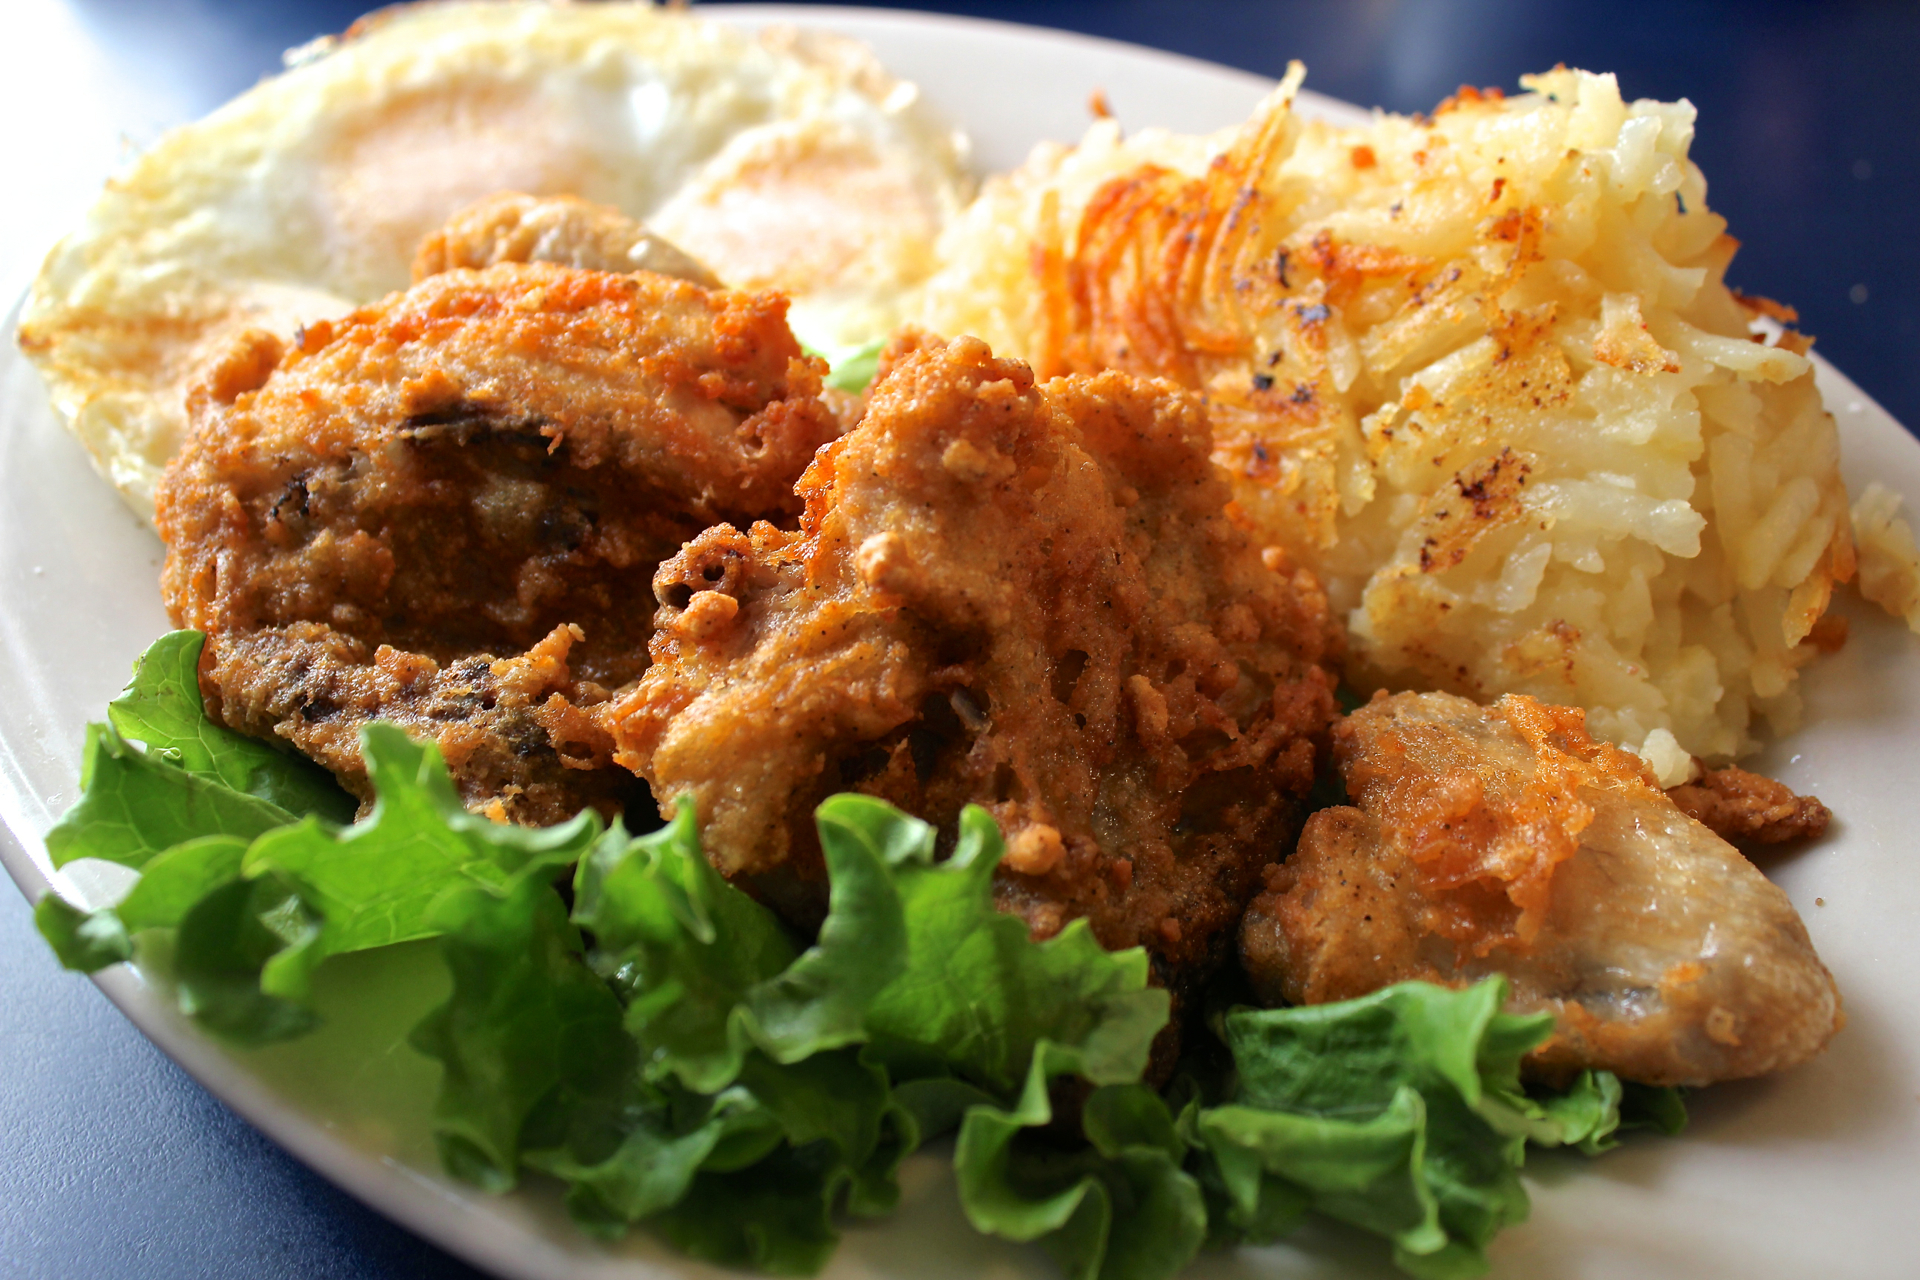 Fried chicken and eggs at Southern Kitchen Coffee Shop.